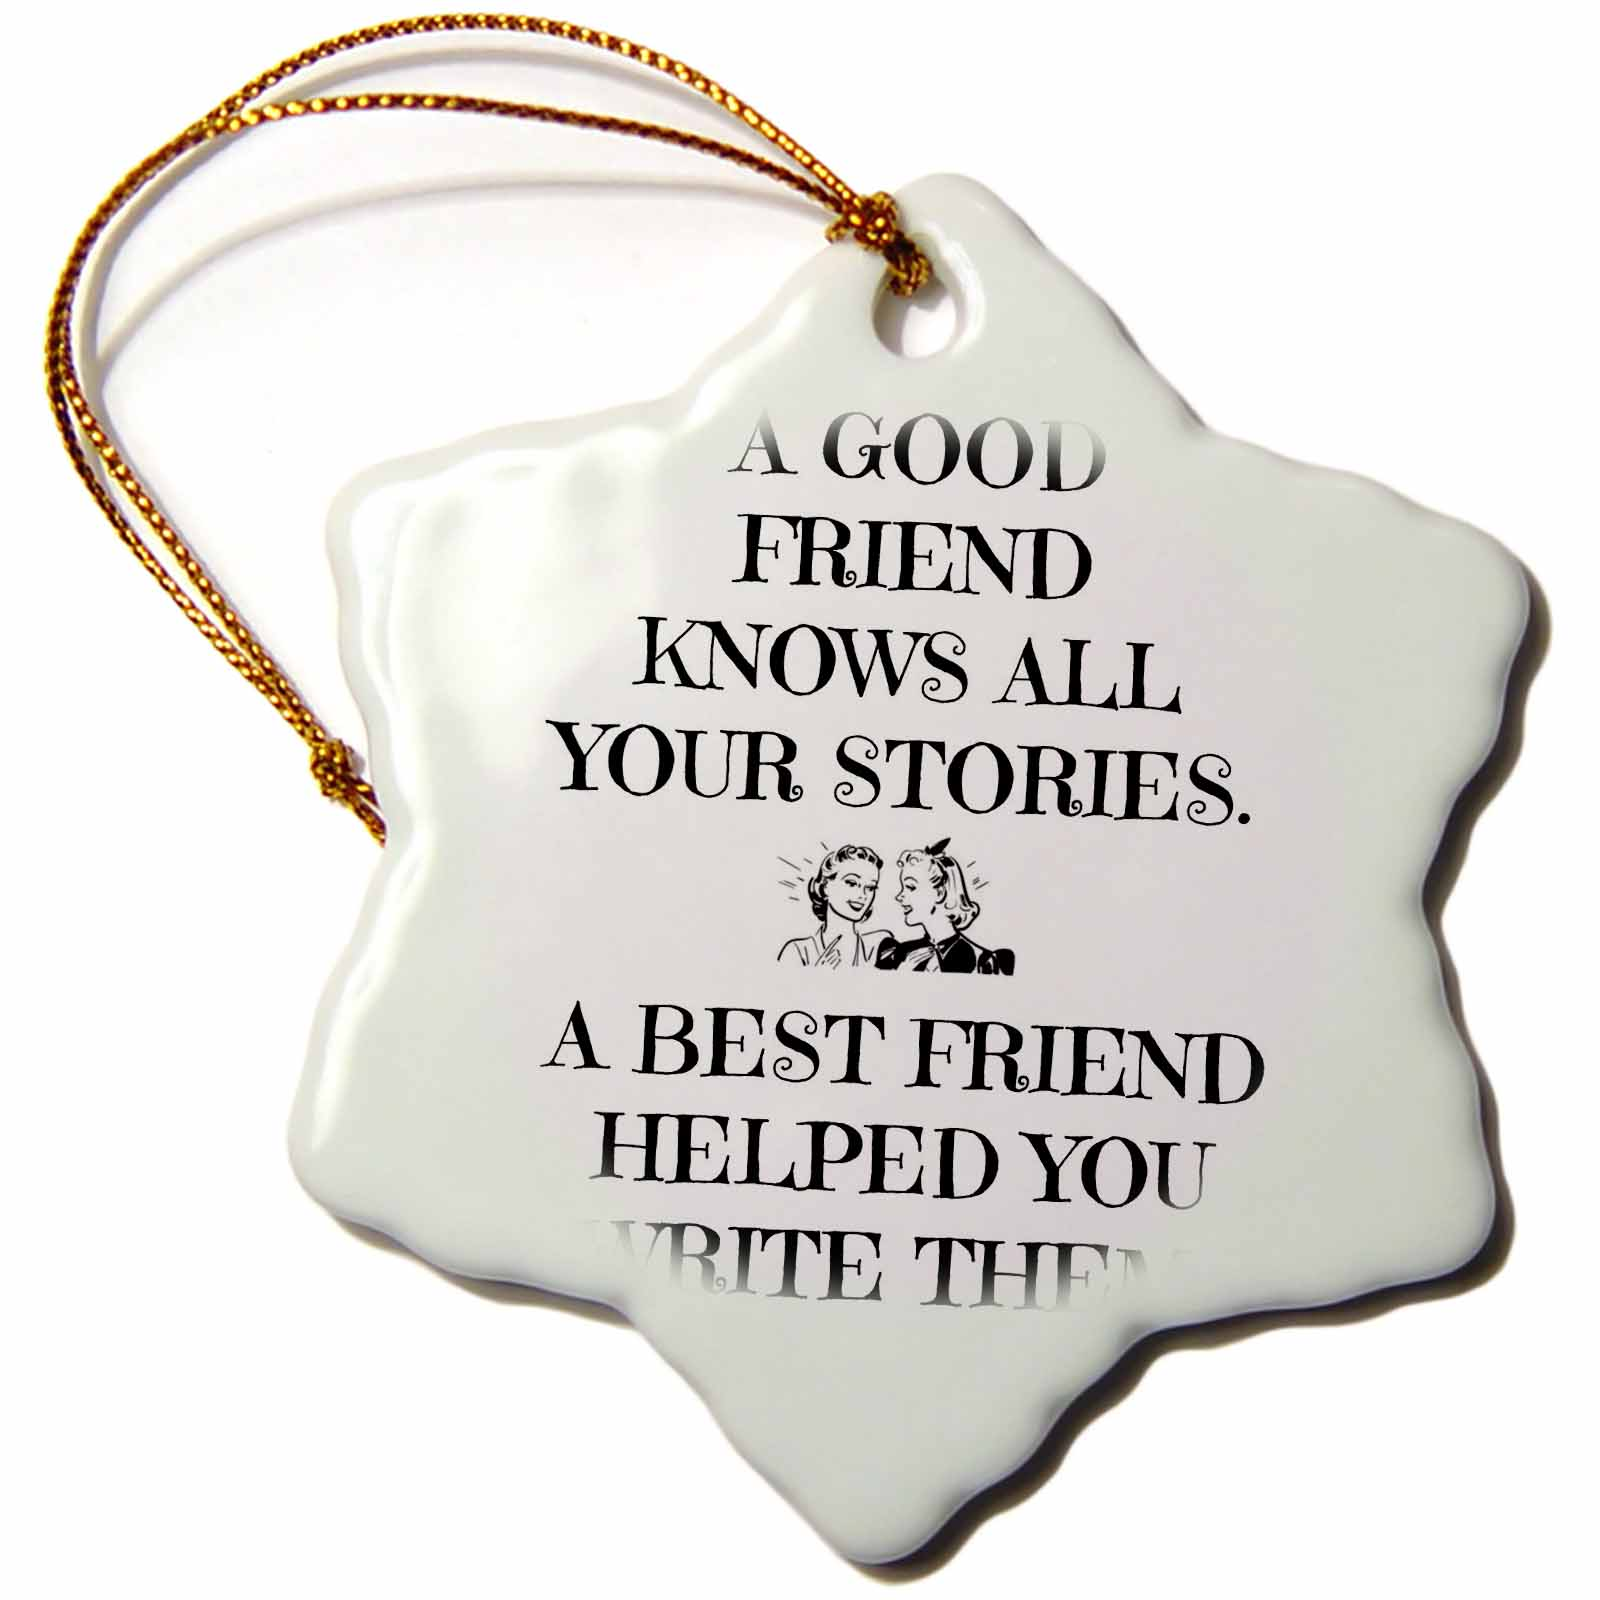 3dRose A good friend knows all your stories, best friend helped write them, Snowflake Ornament, Porcelain, 3-inch